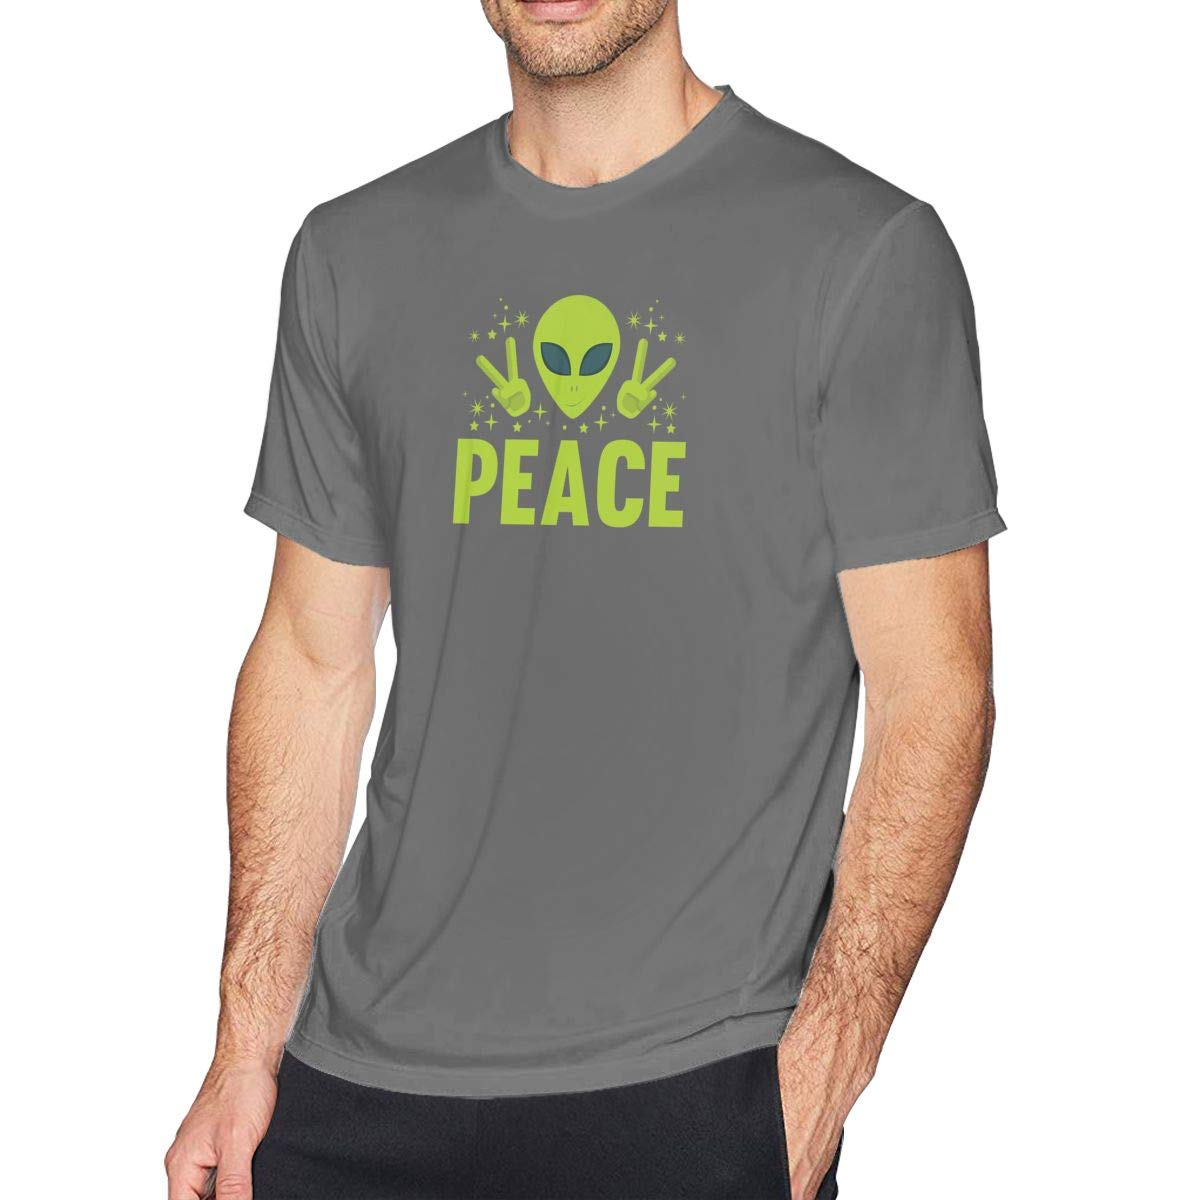 UFO Alien Peace Mens Casual Graphic Short Sleeve T-Shirt 100/% Cotton Funny Saying Tee Tops